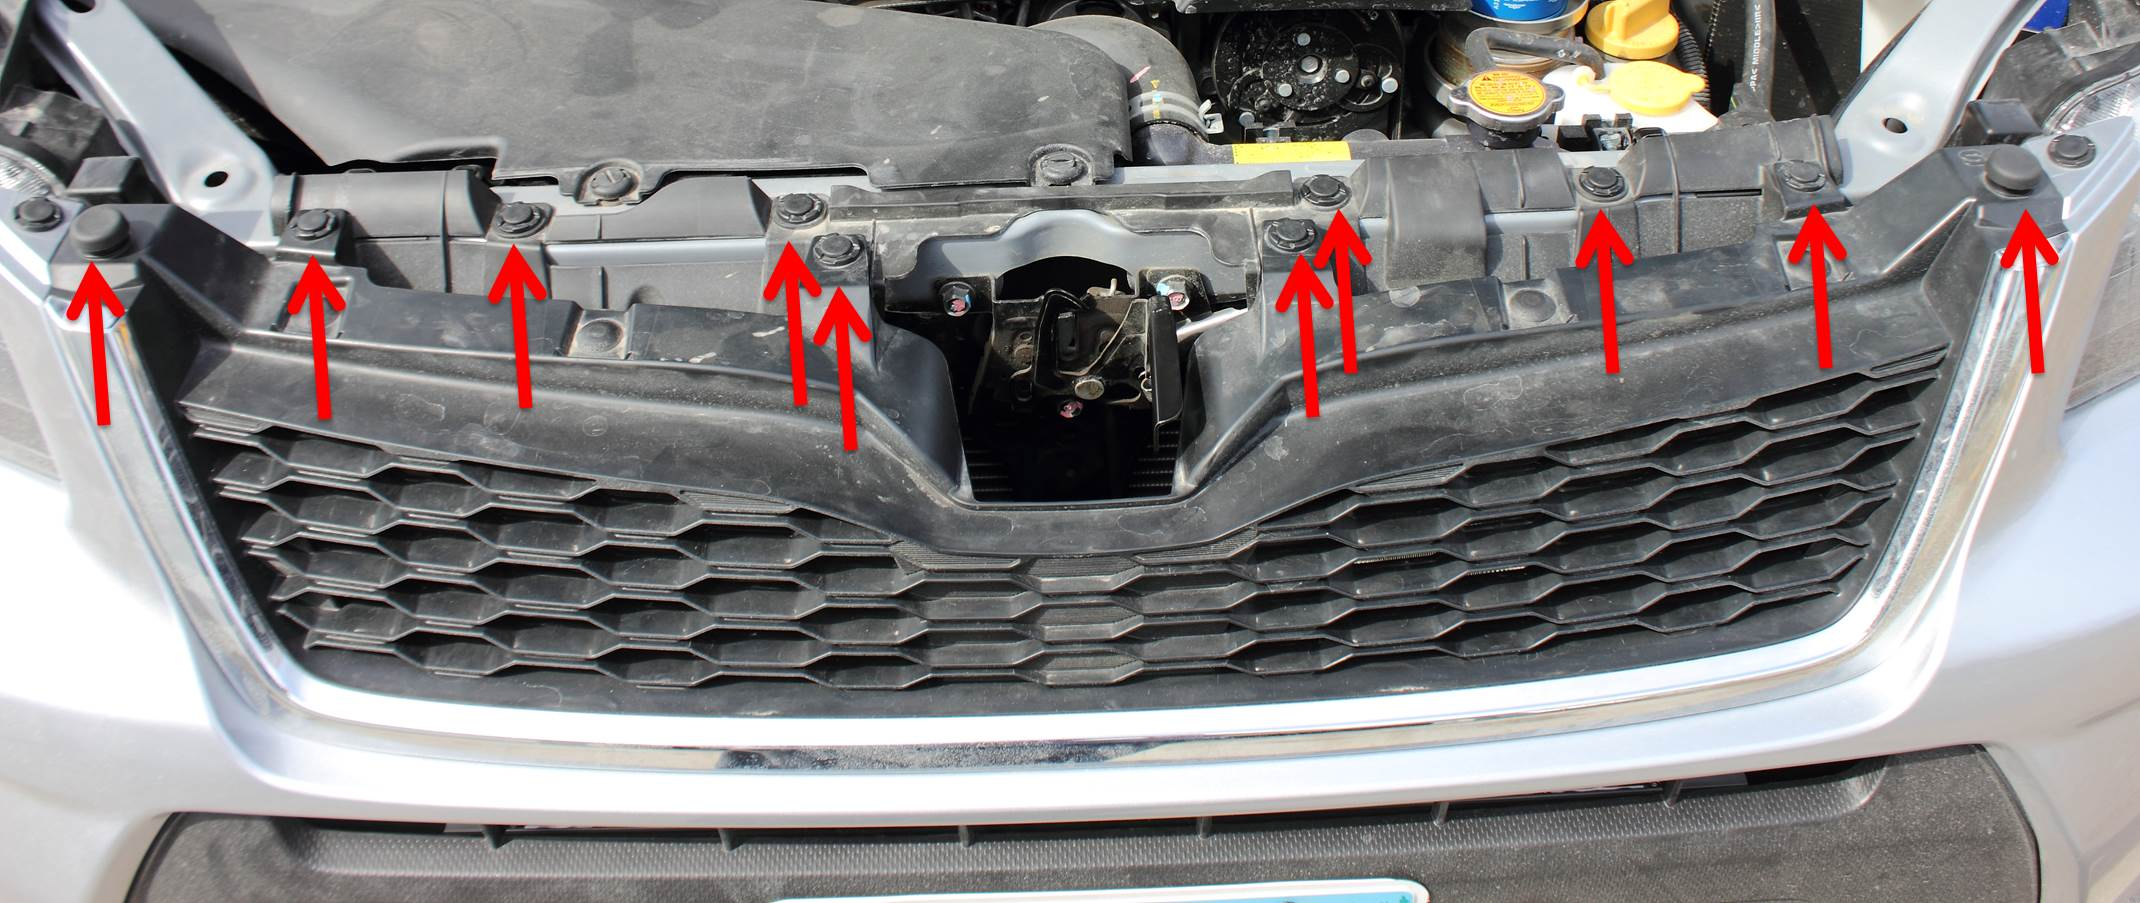 How To Remove The Grille On A 2014 Or Newer Subaru Forester